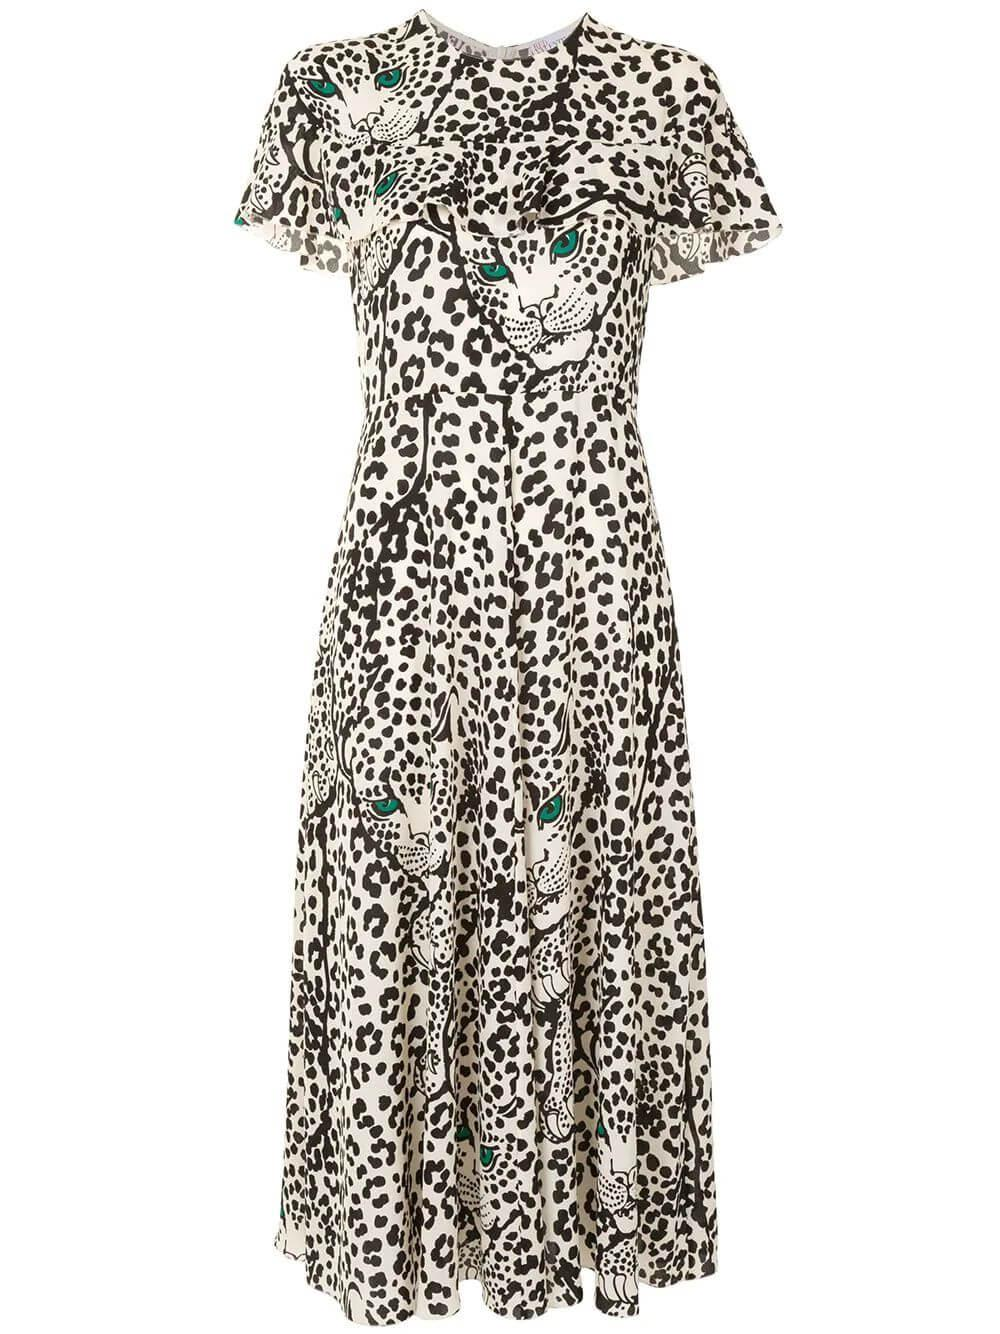 Leopard Print Midi Dress Item # UR3VAF2056B